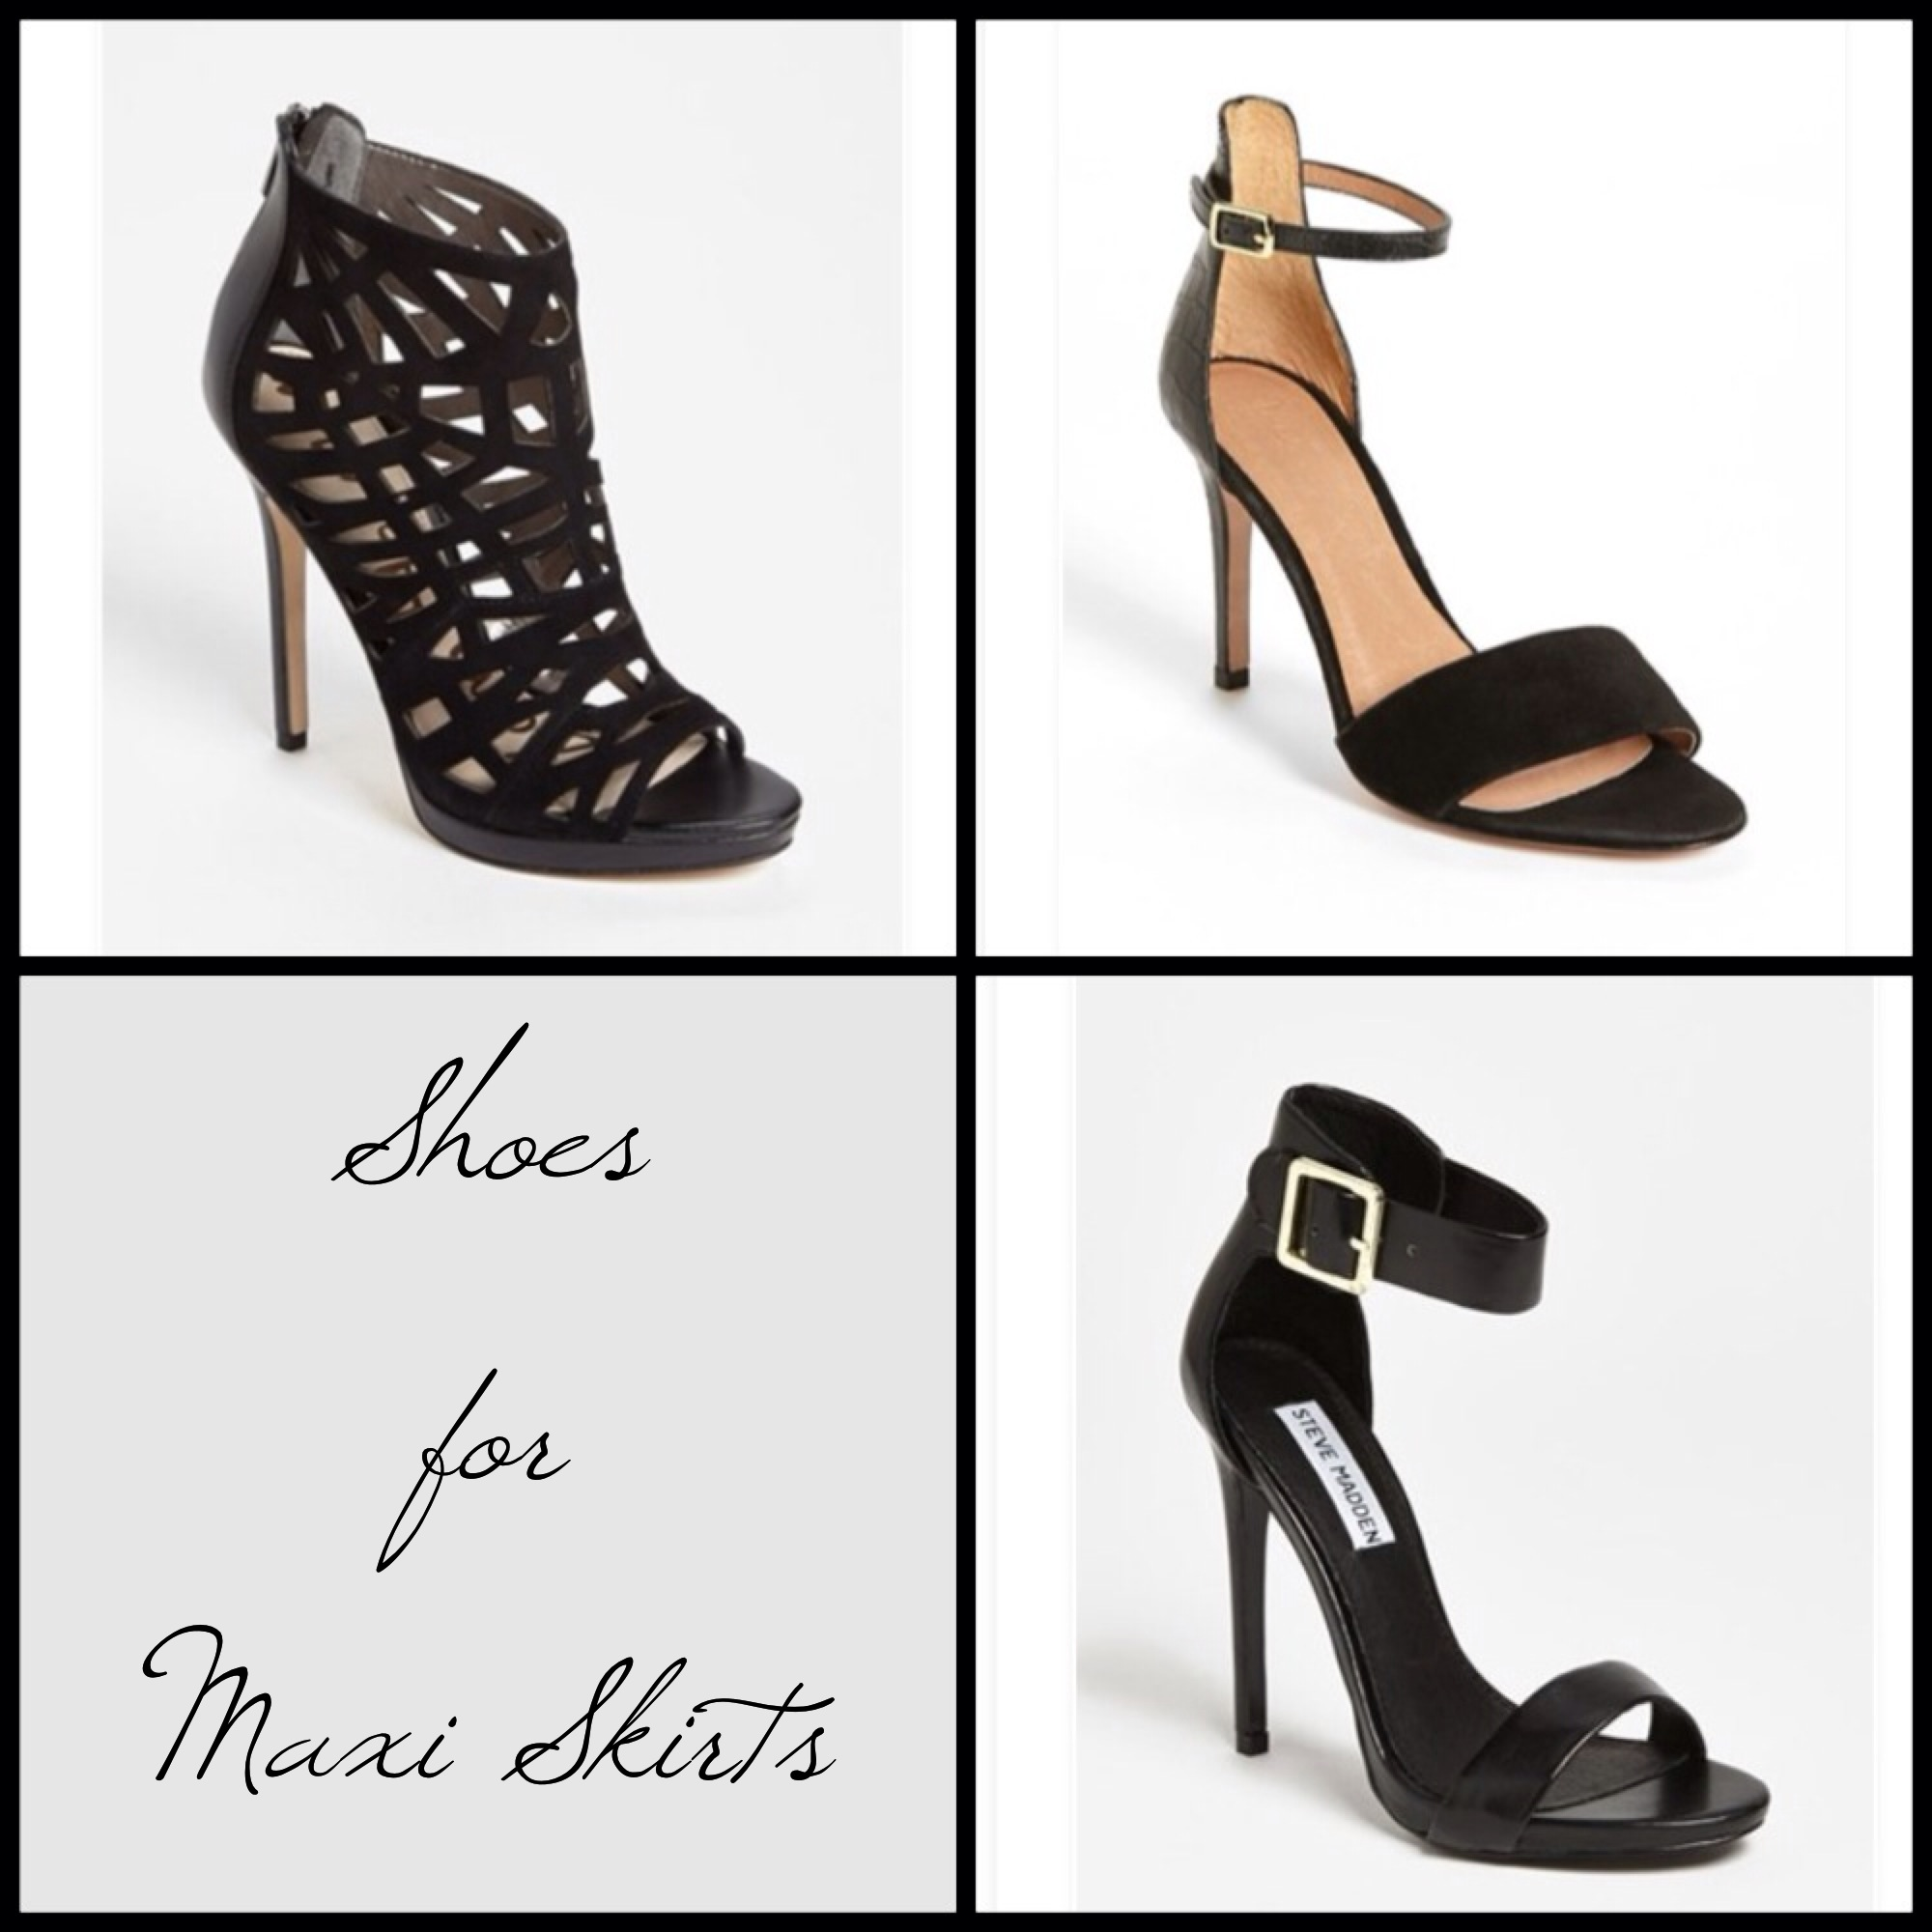 THE Shoes to wear with Maxi Skirts